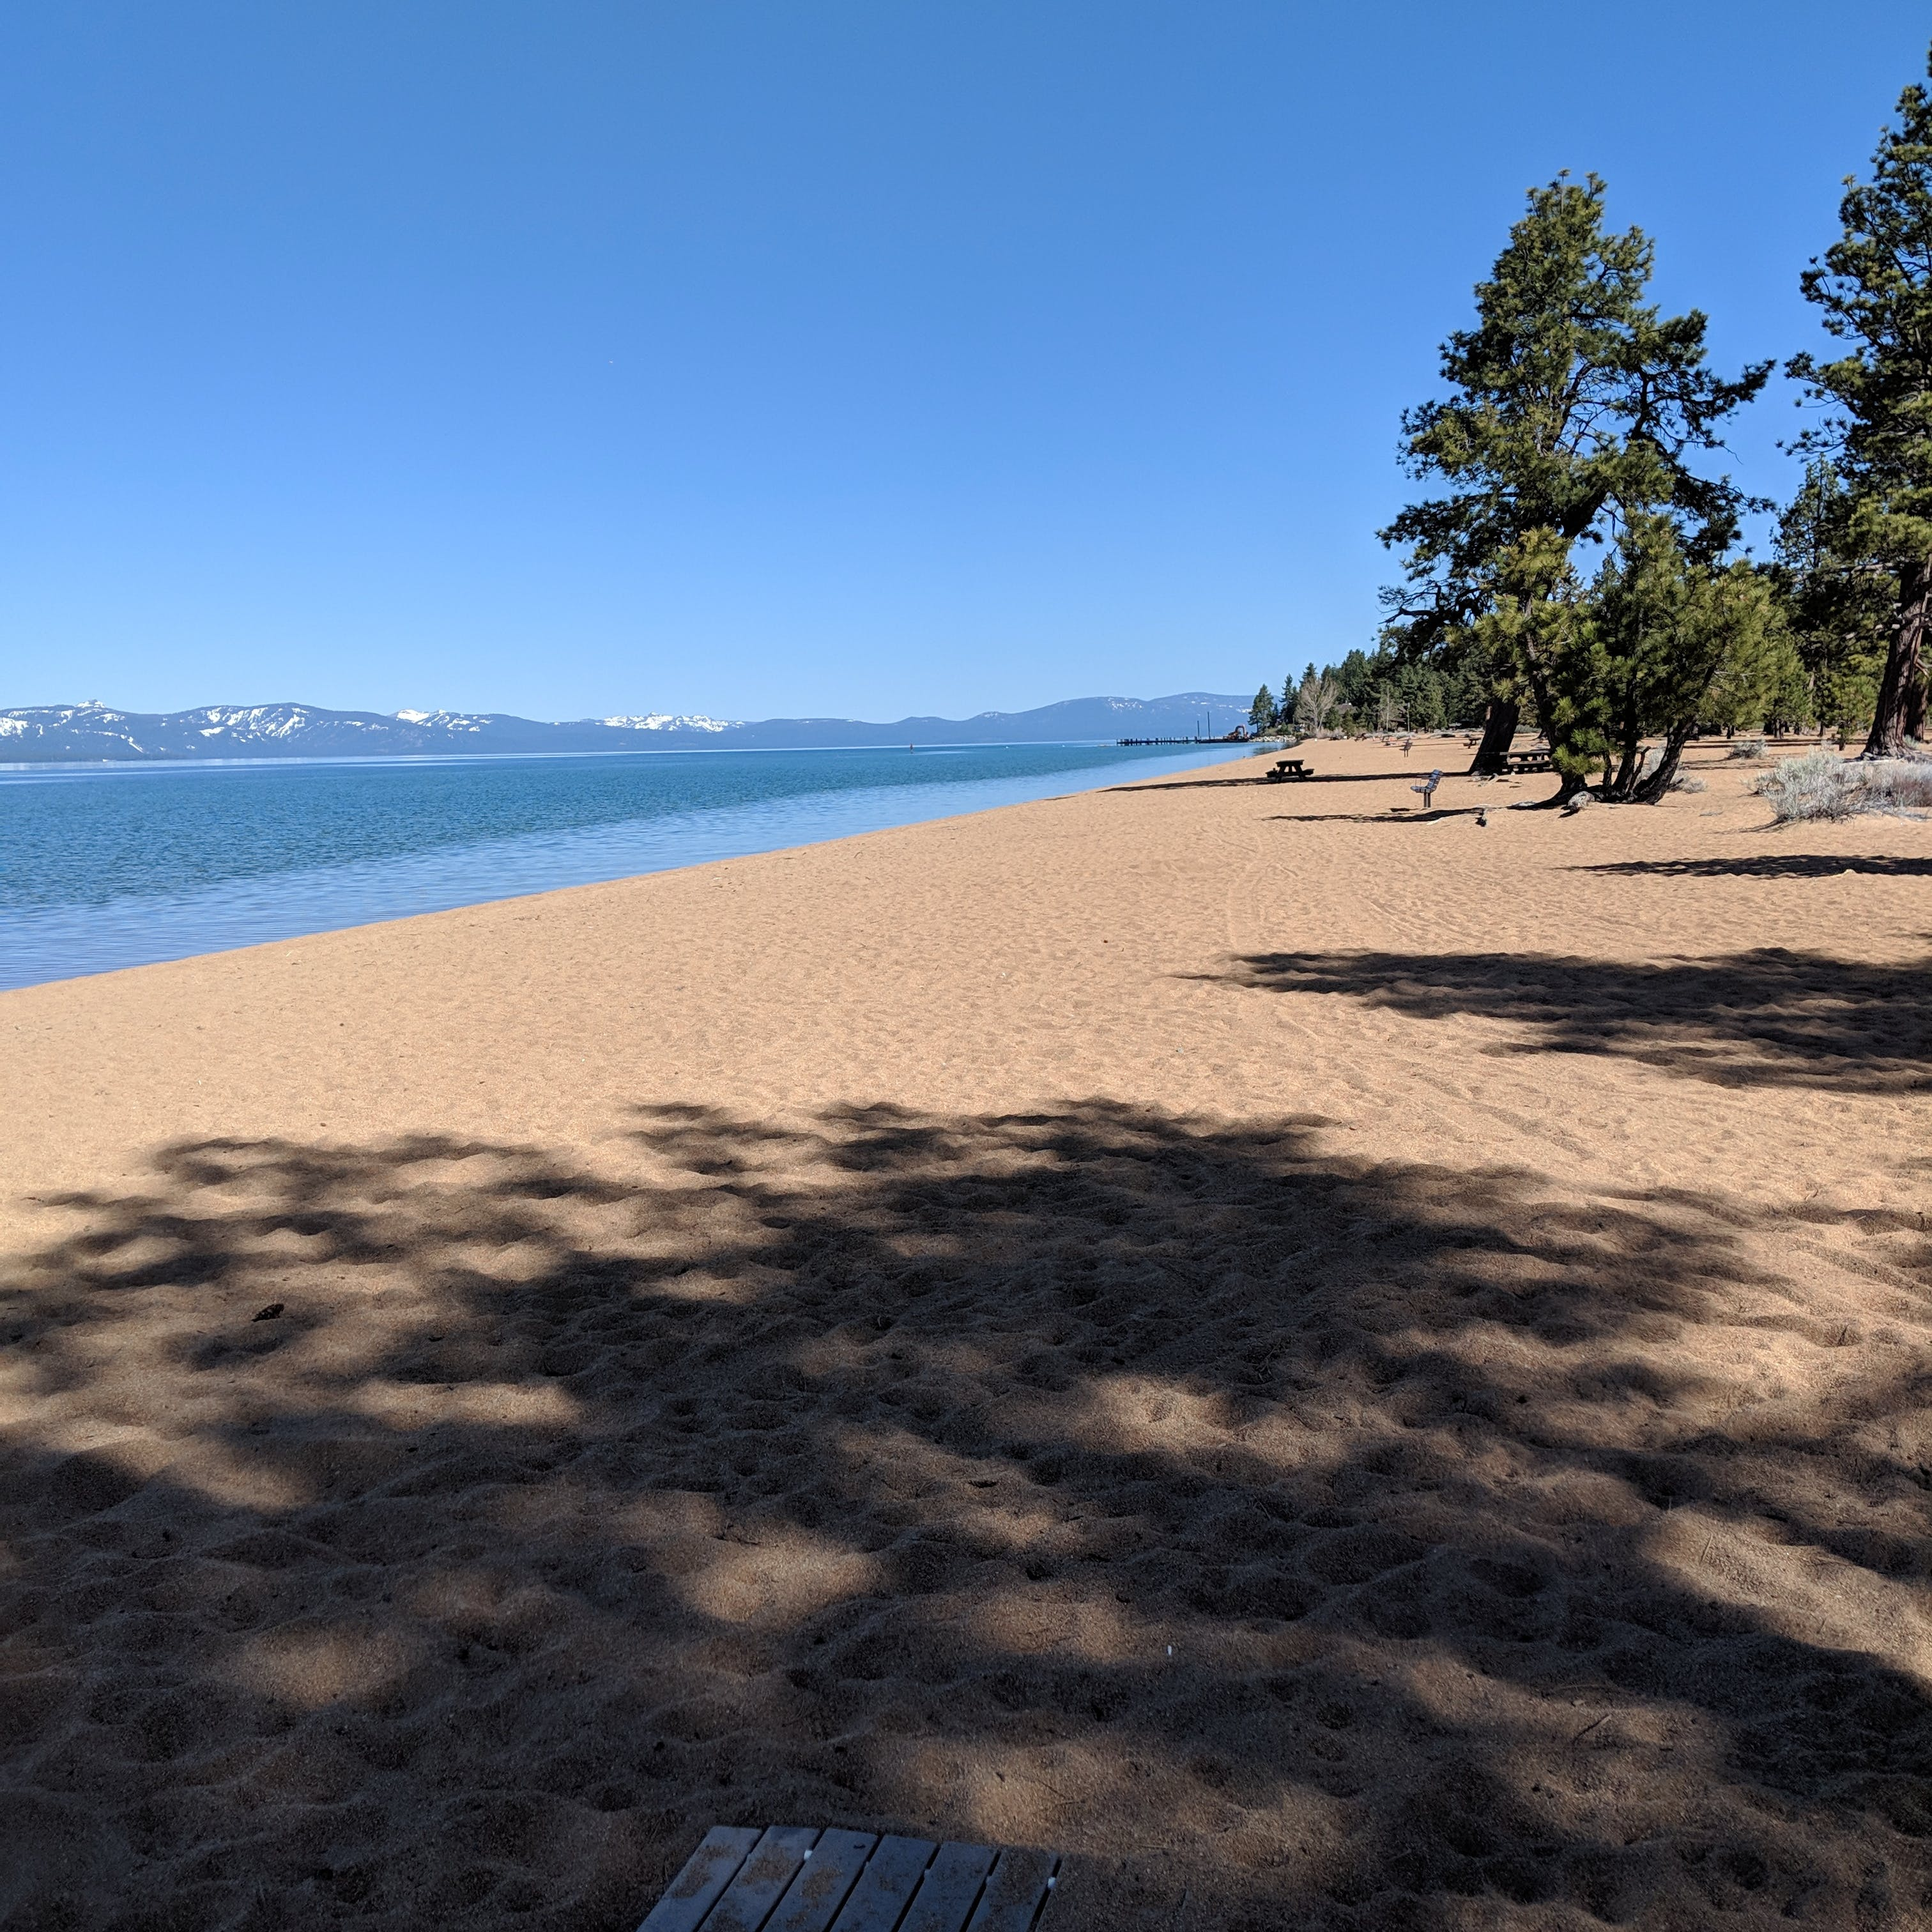 Photo Of Nevada Beach Campground And Day Use Pavilion By Aaron F